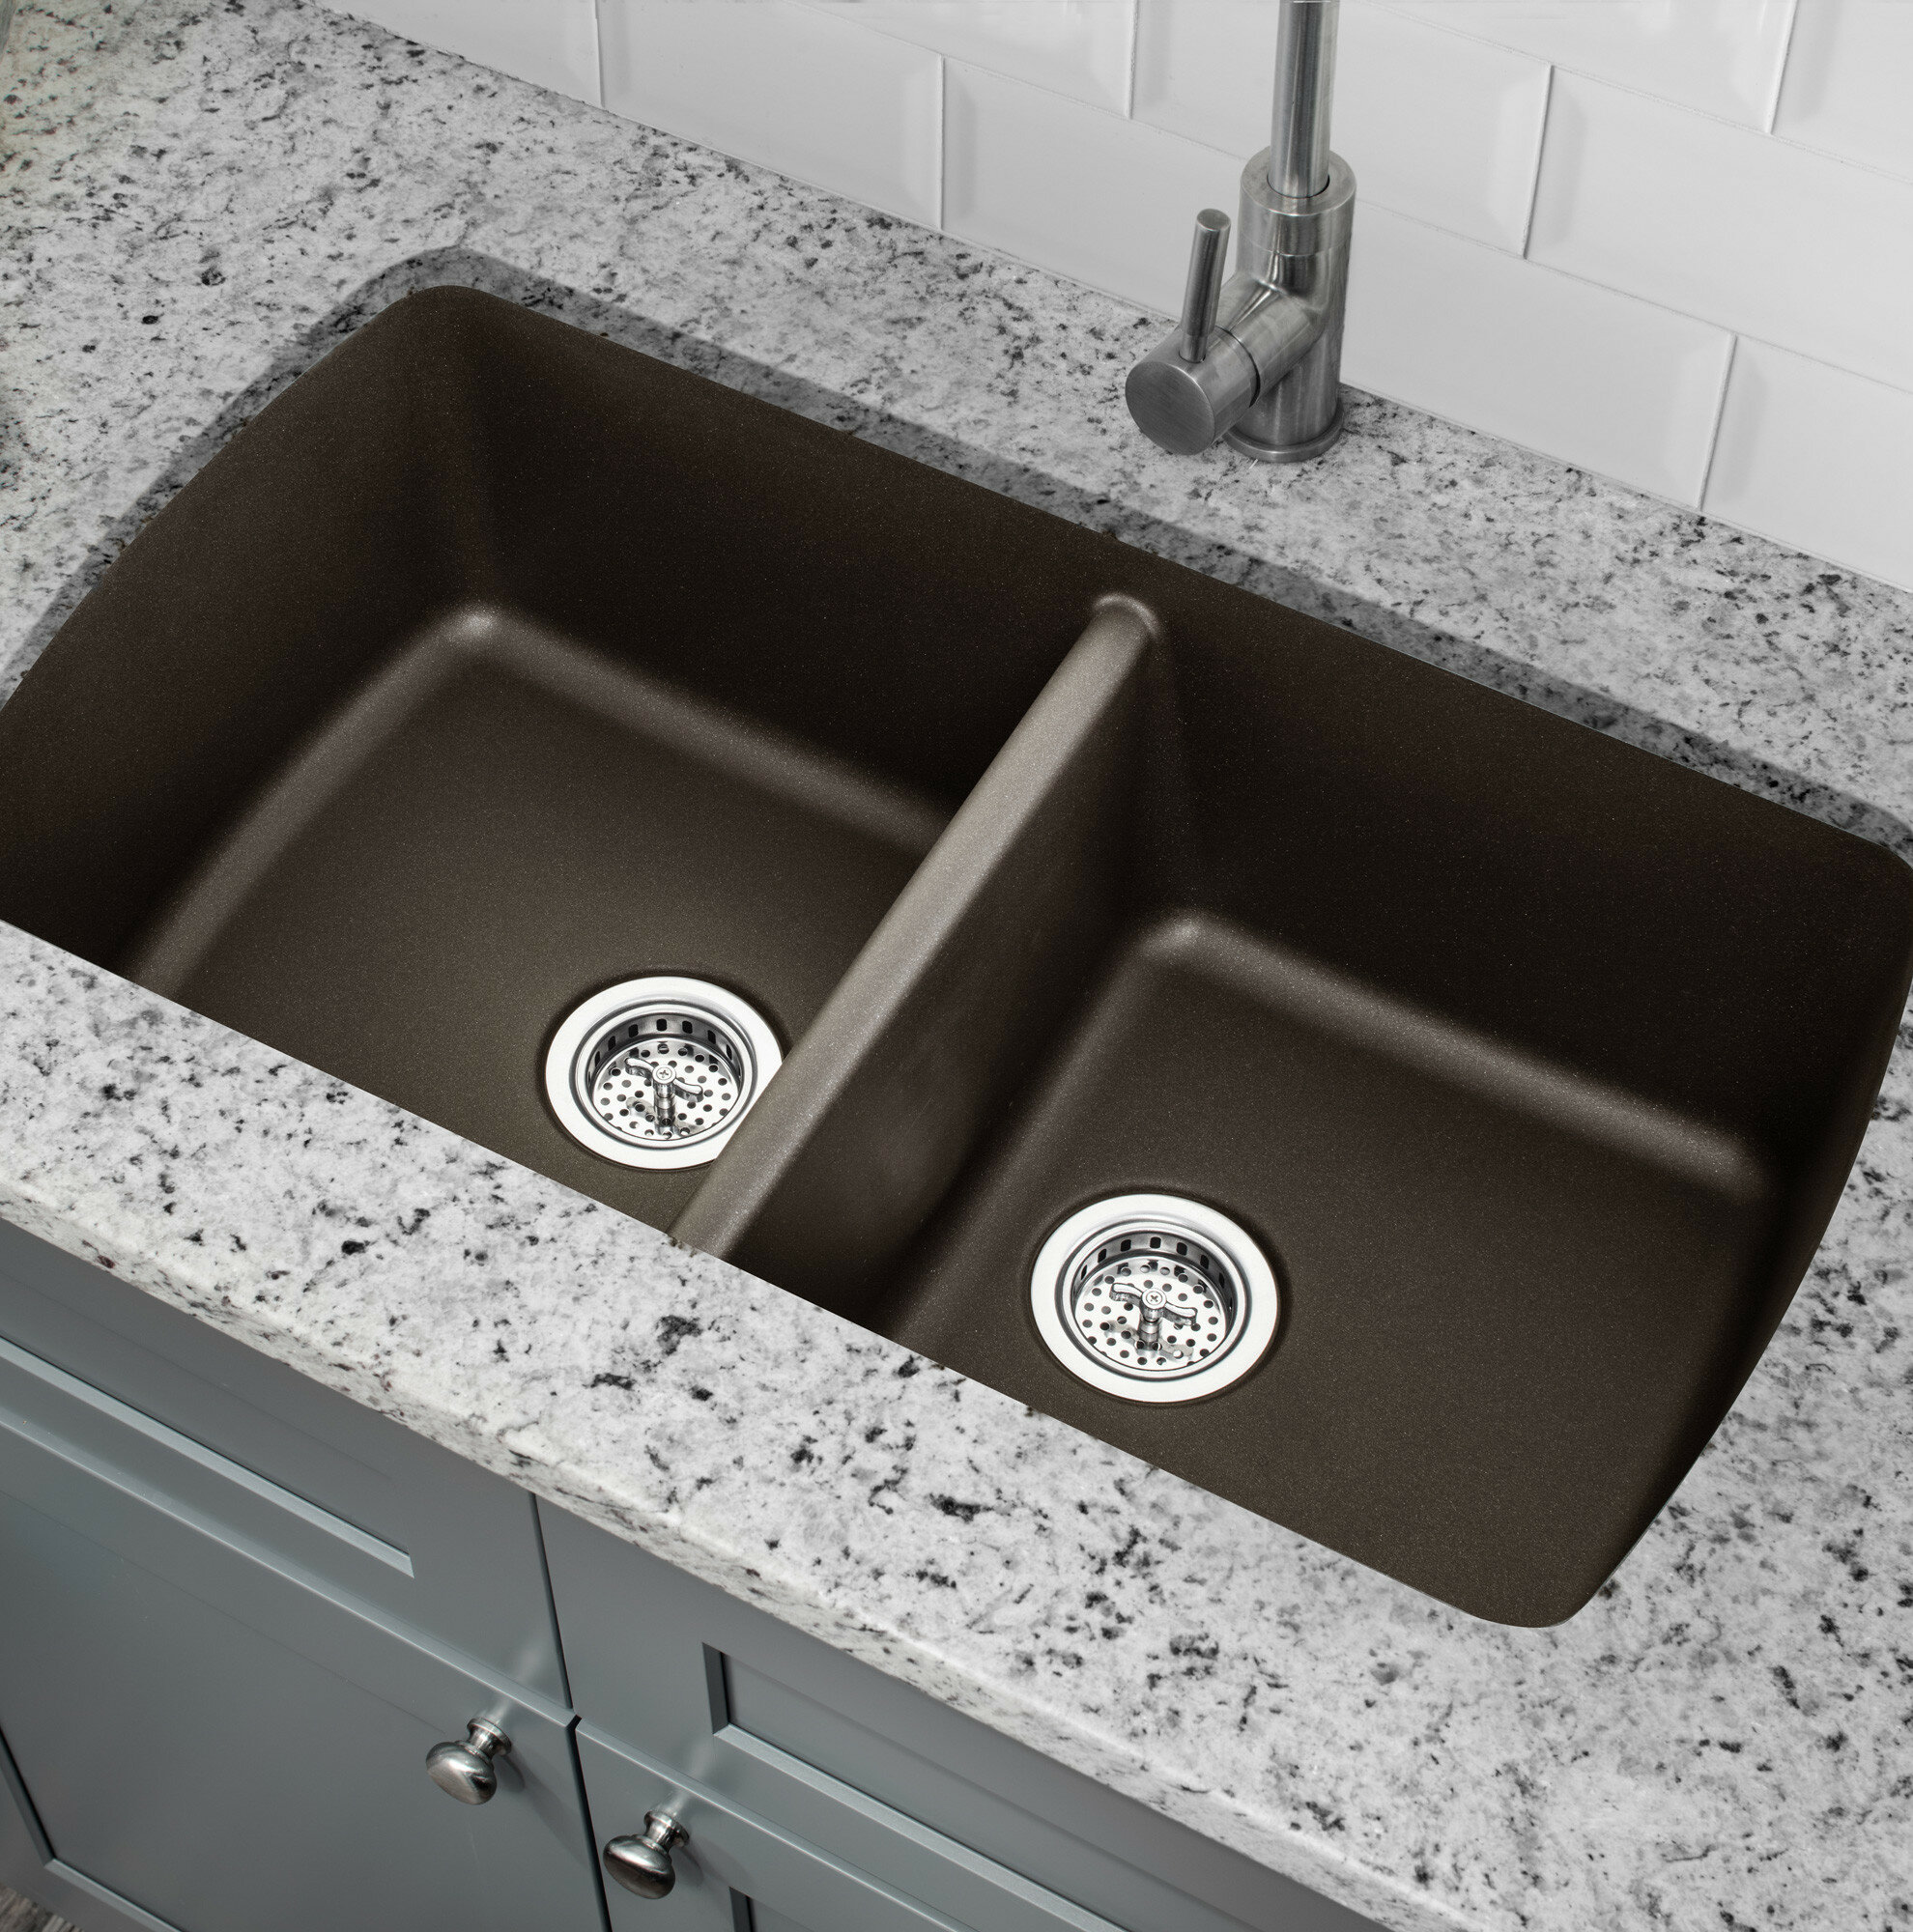 34 L X 19 W Double Basin Undermount Kitchen Sink With Drain Embly